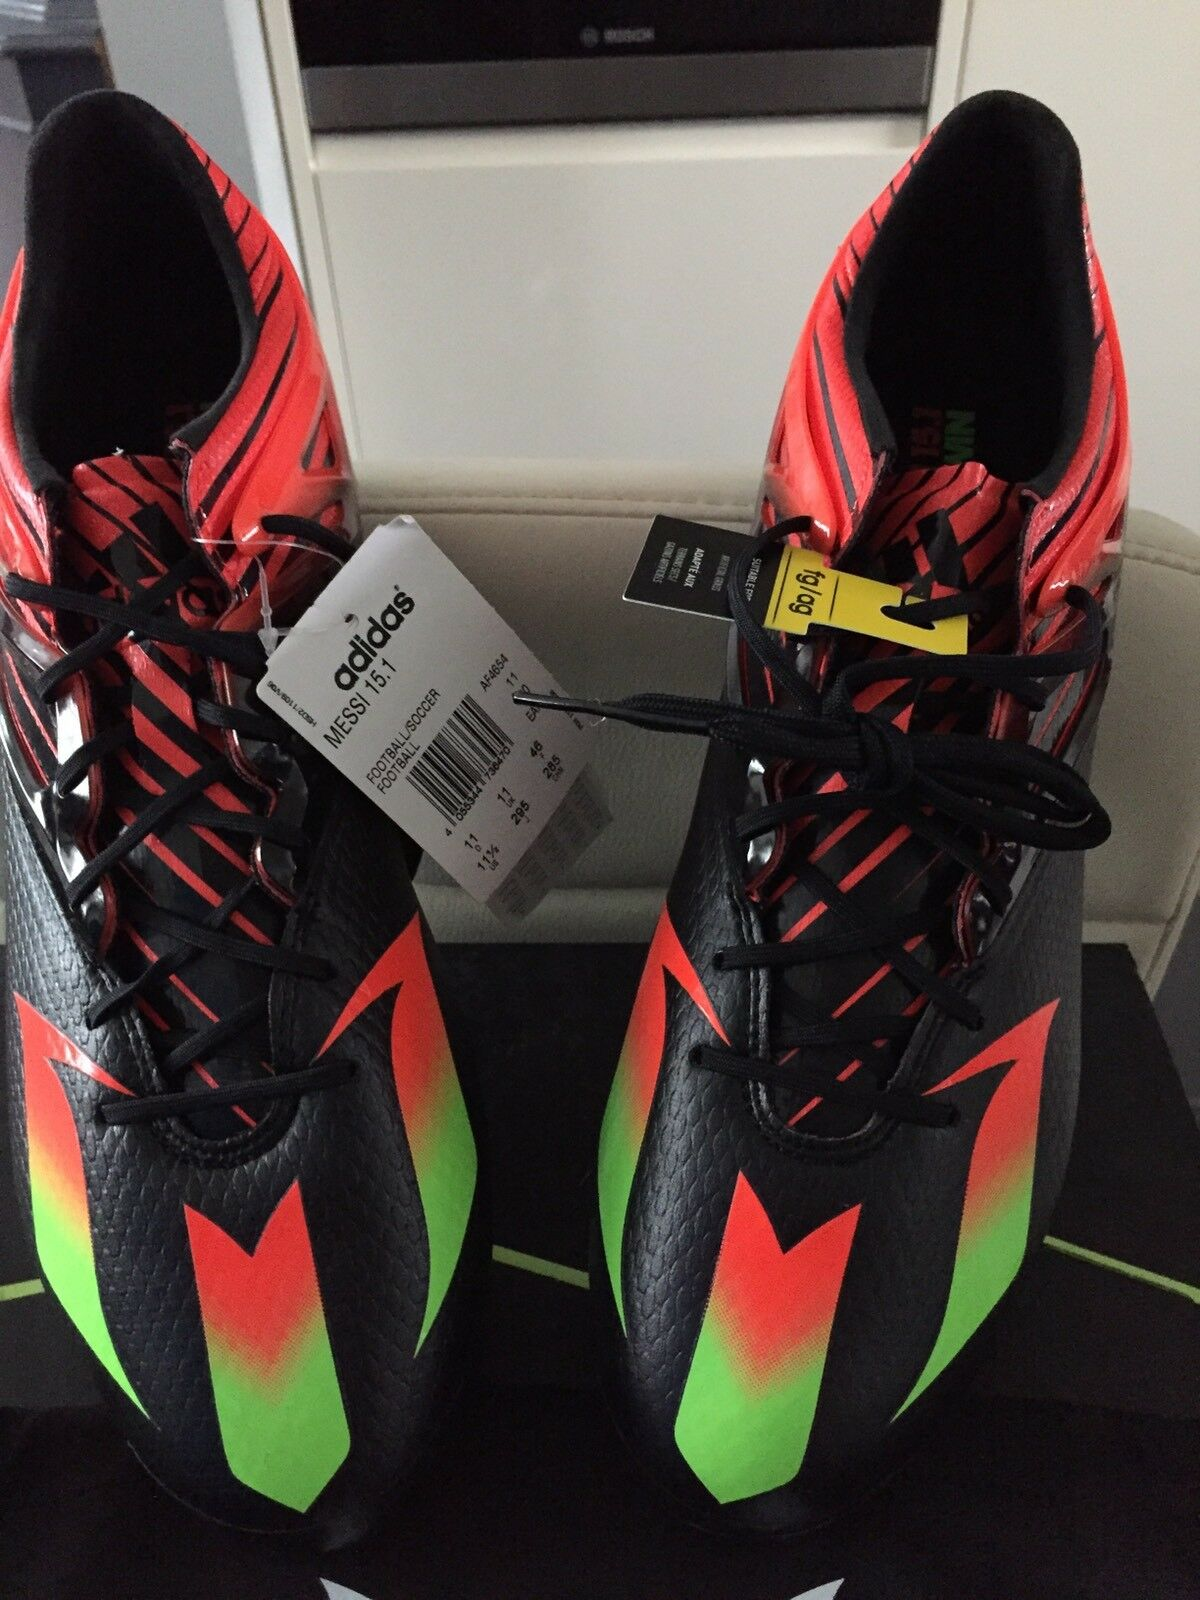 Adidas MESSI 15.1 FG Football Boots, Adult Size 11